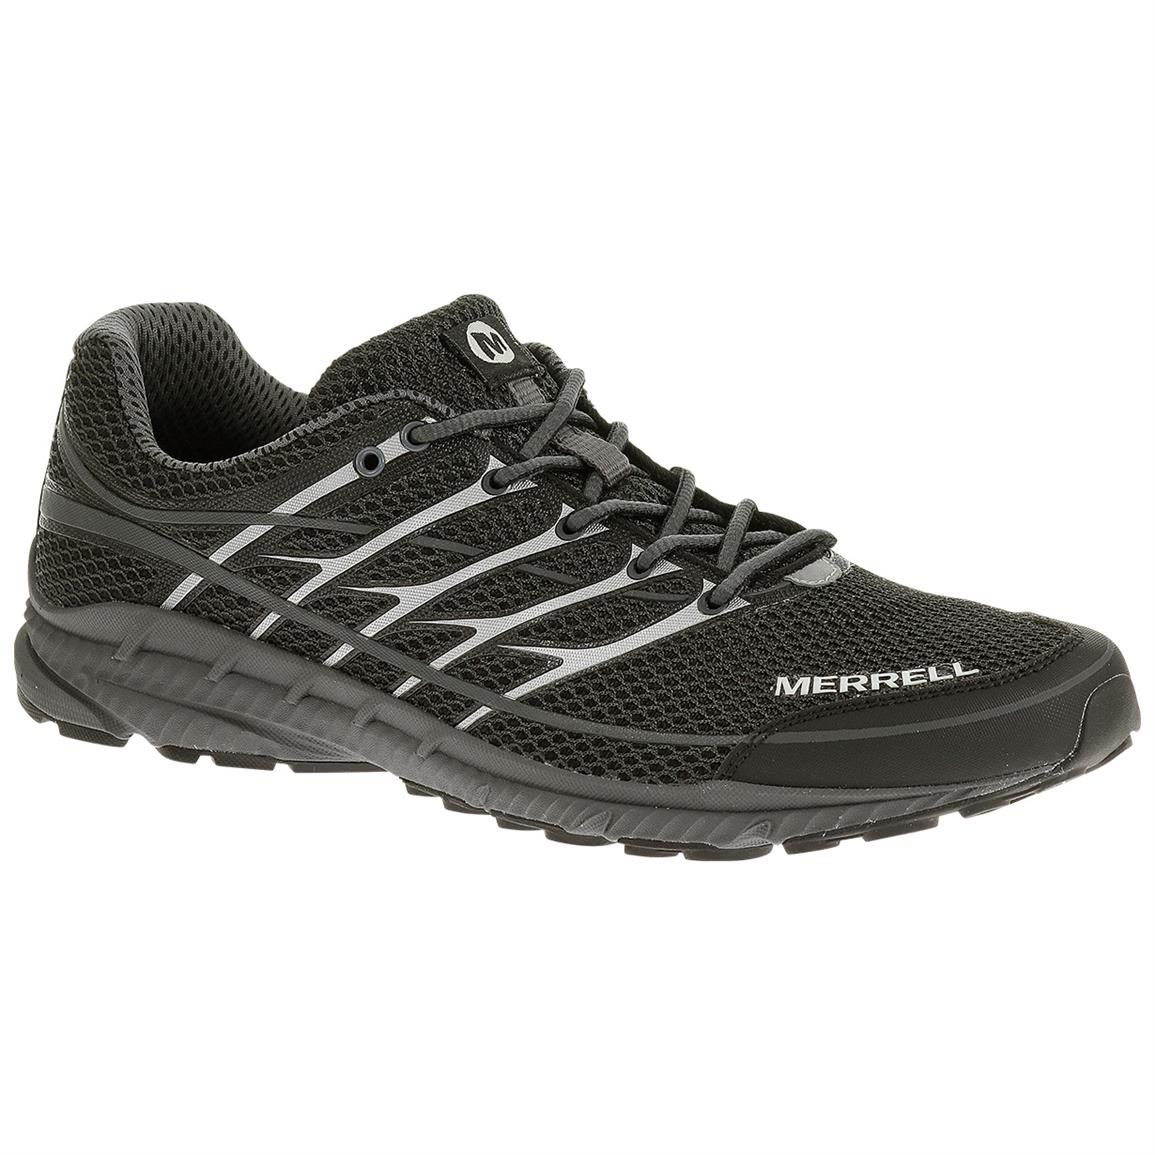 Merrell Mix Master Move 2 Trail Running Shoes, Black  / Castle Rock